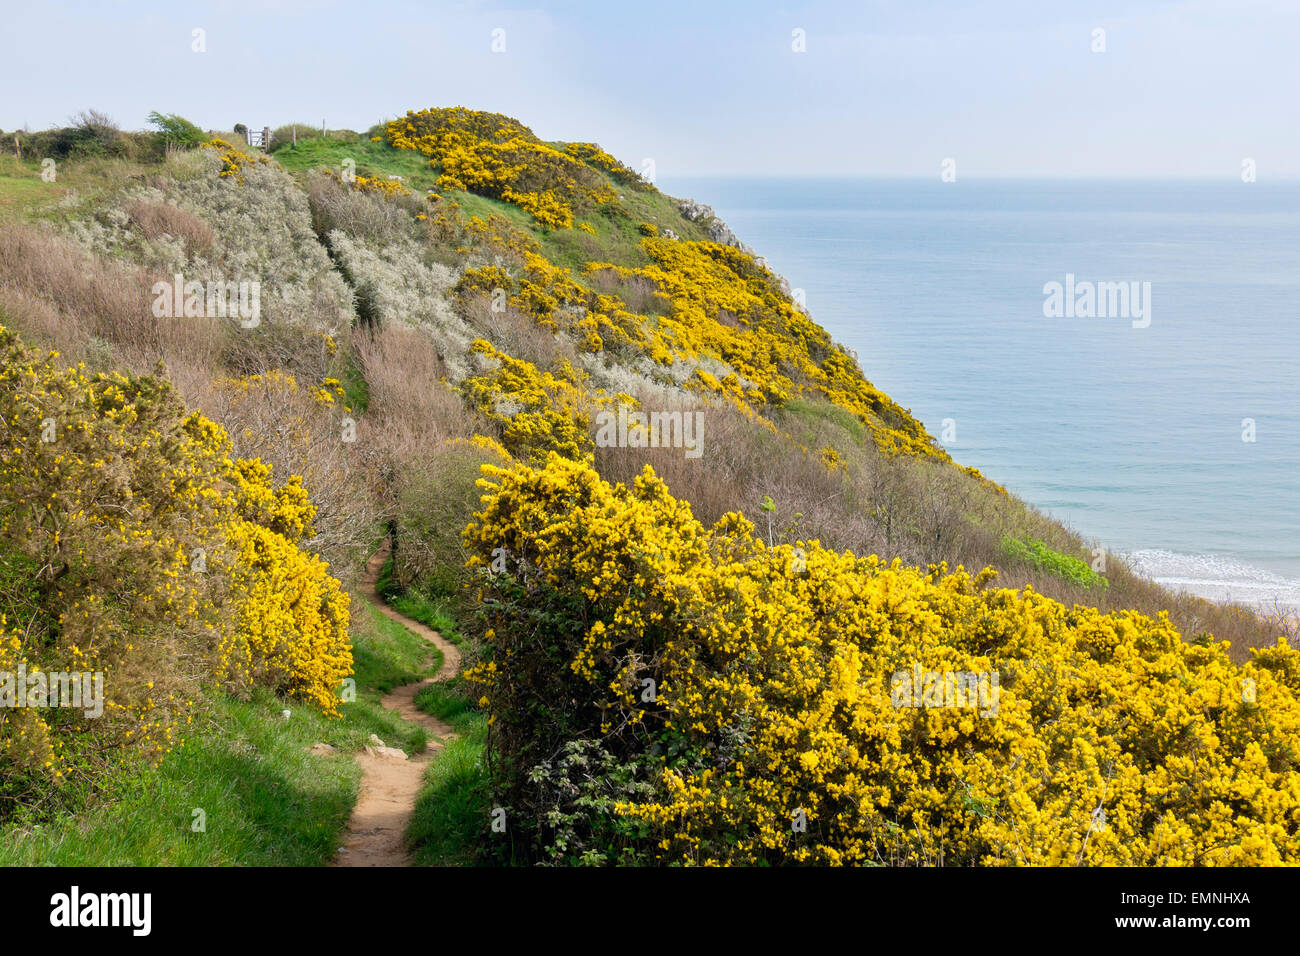 Coast footpath through flowering Gorse bushes on clifftop on Gower Peninsula. Nicholaston Swansea West Glamorgan - Stock Image